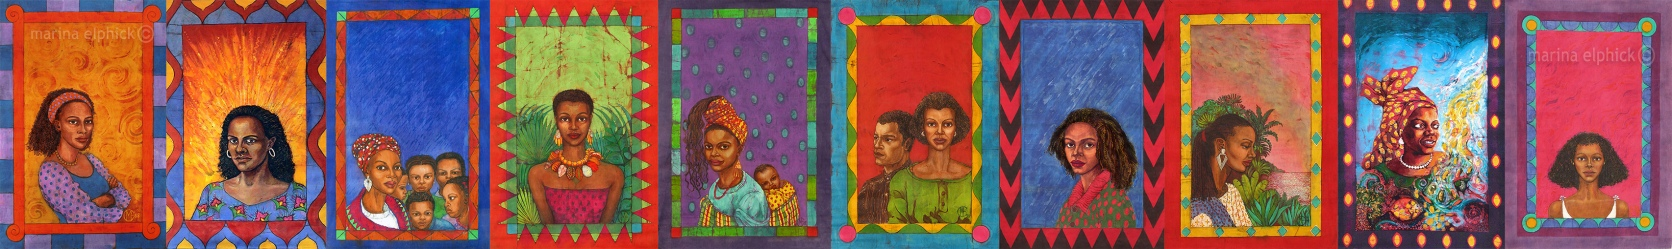 All artwork for Buchi Emecheta's books, by Marina Elphick, UK's leading batik artist.